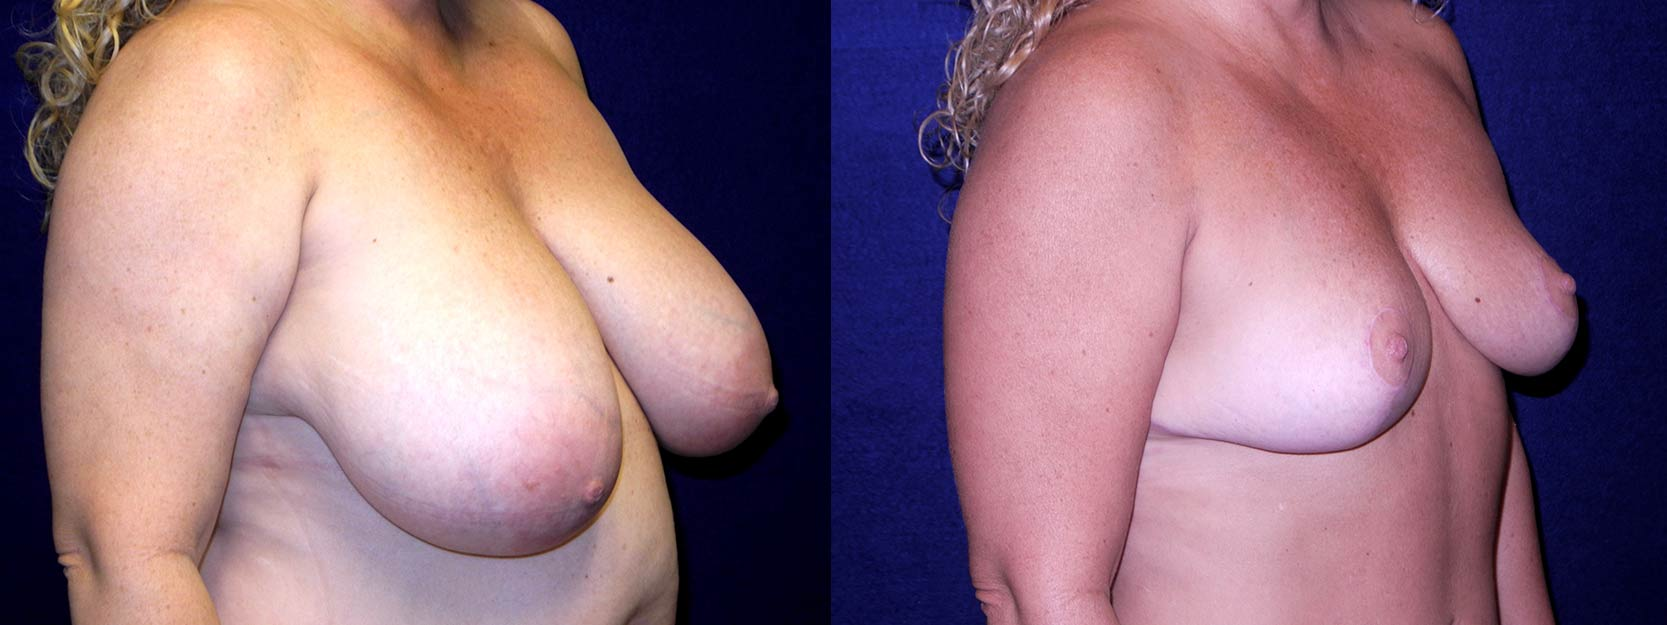 Right 3/4 View - Breast Reduction After Pregnancy